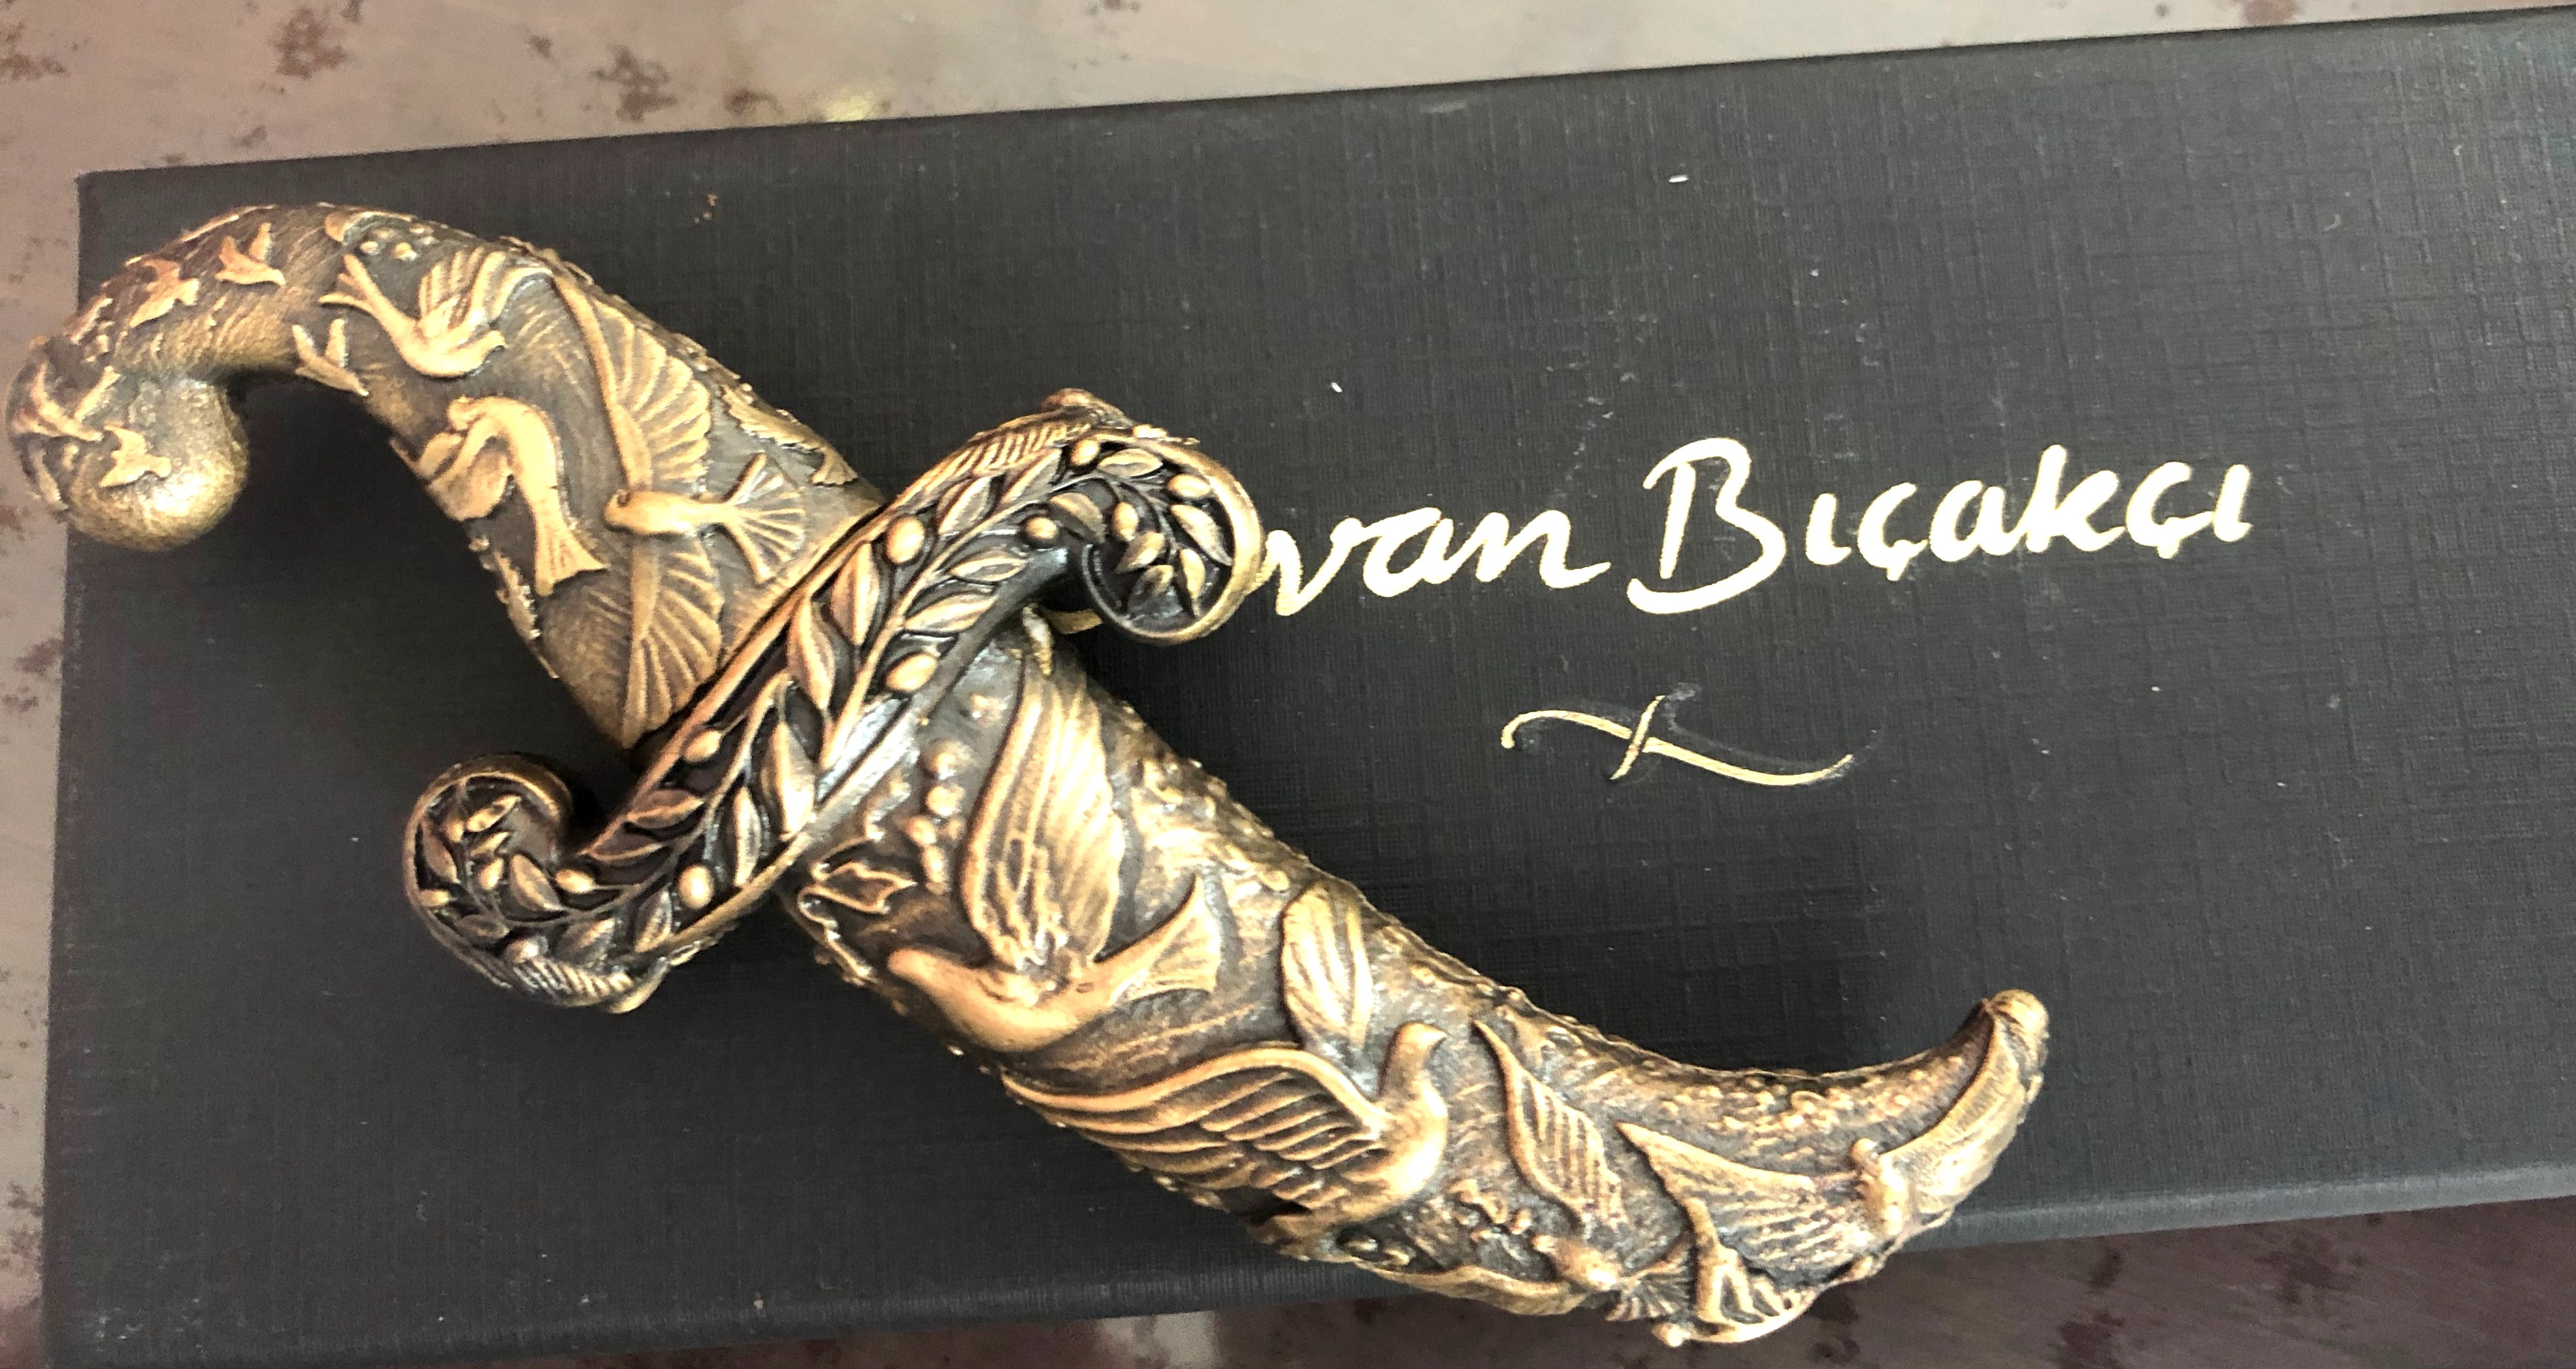 Sevan Bicakci at Watches & Wonders Miami